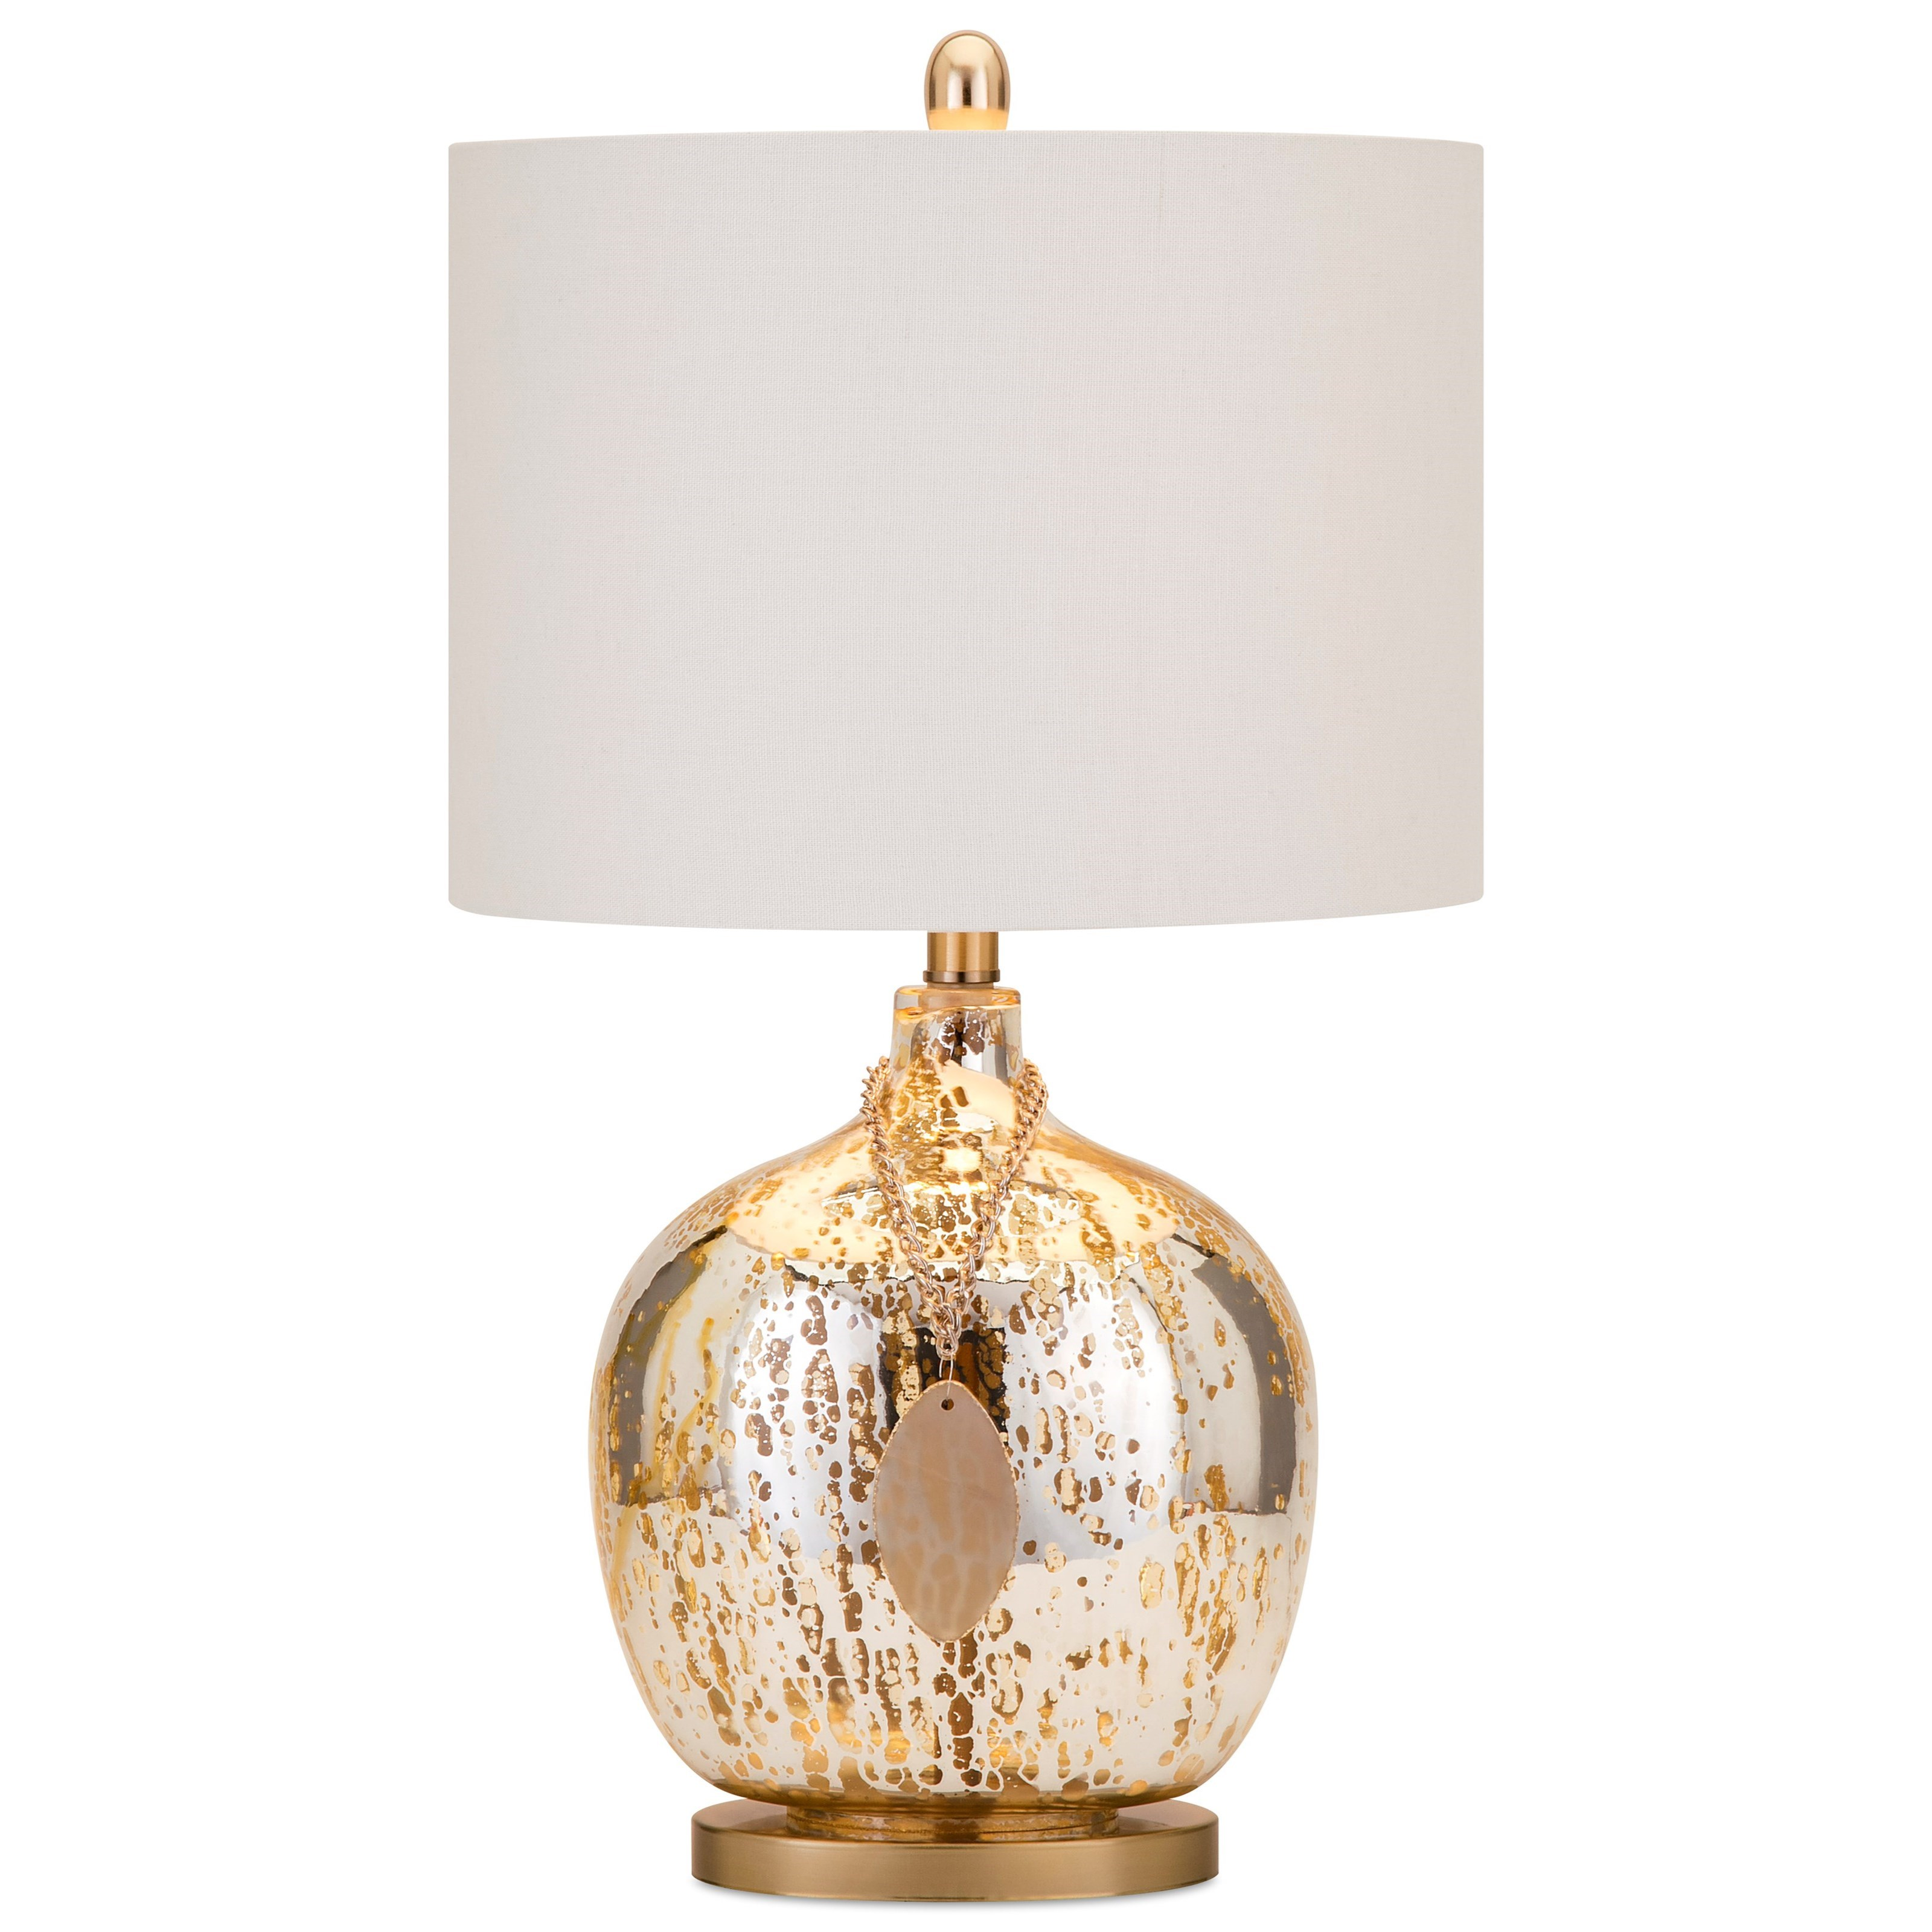 Becky Fletcher Fanni Acage Accent Lamp by IMAX Worldwide Home at Alison Craig Home Furnishings